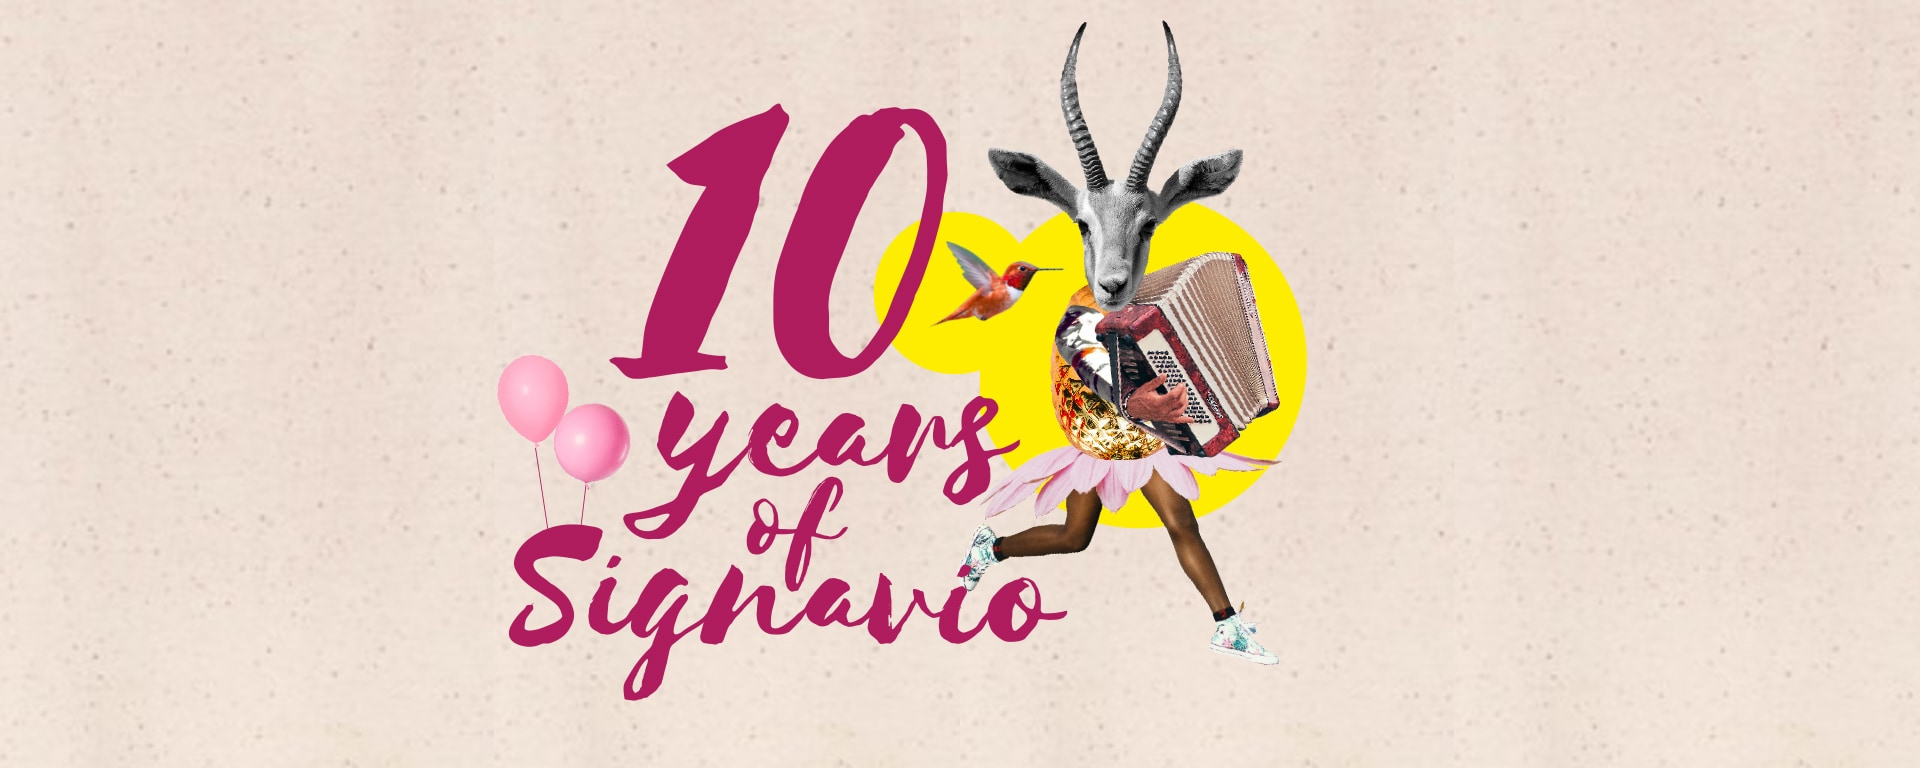 Signav10 turns 10 birthday